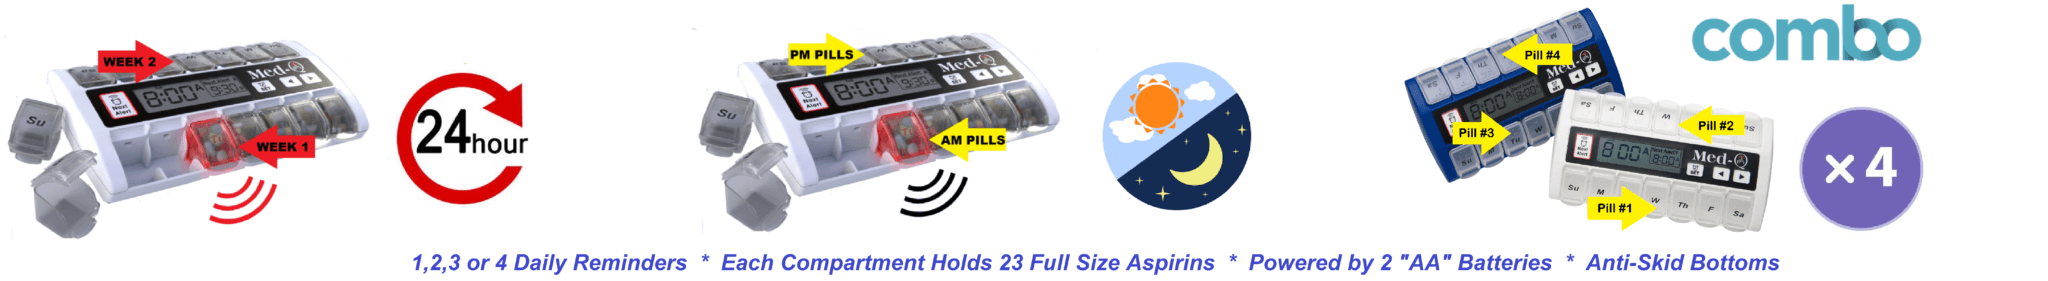 best Smart Pill box dispenser